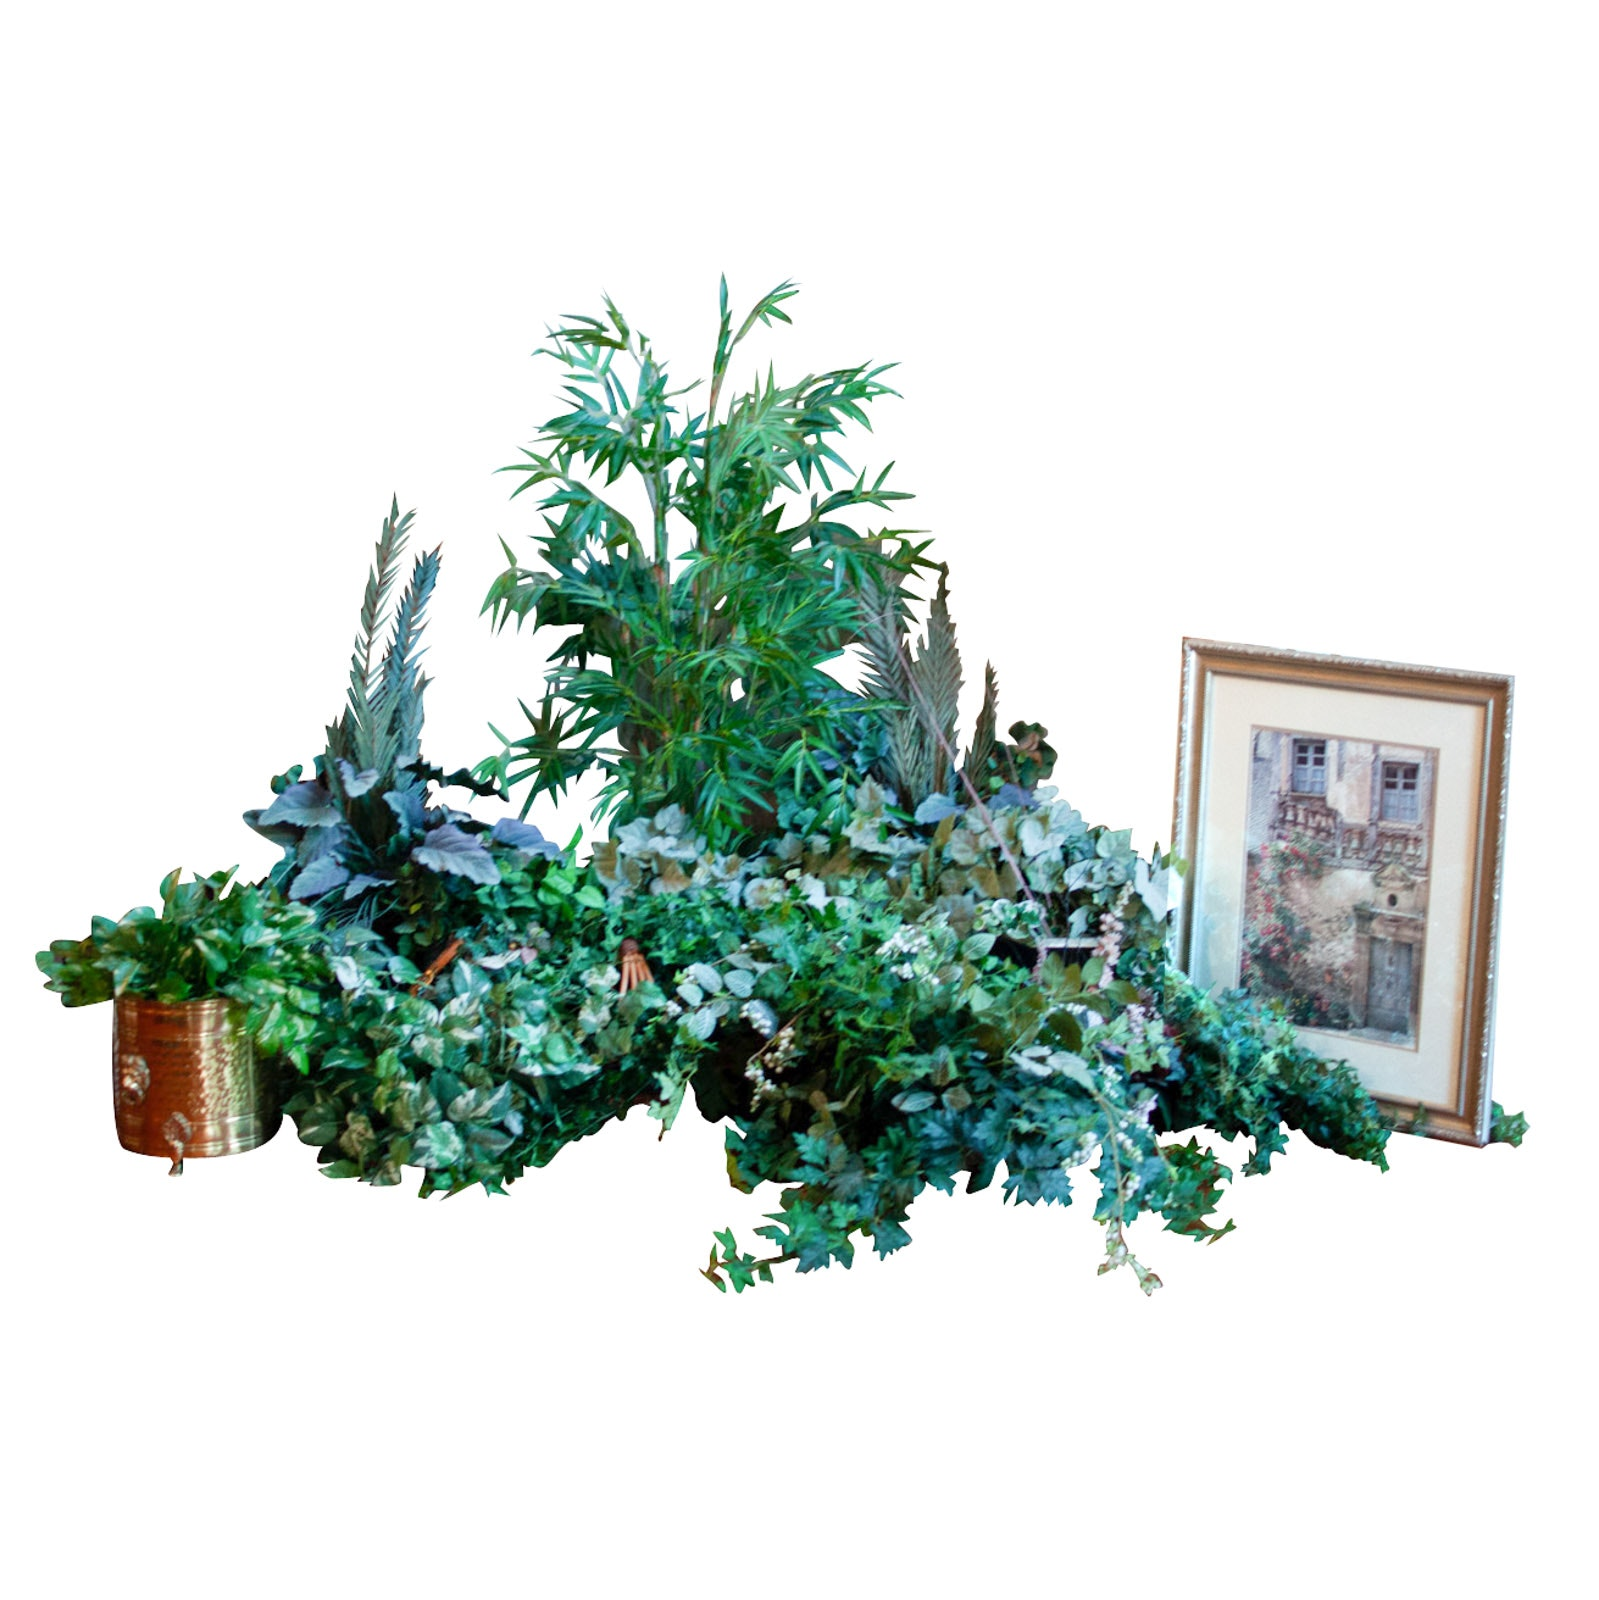 Faux Foliage with Decorative Framed Print